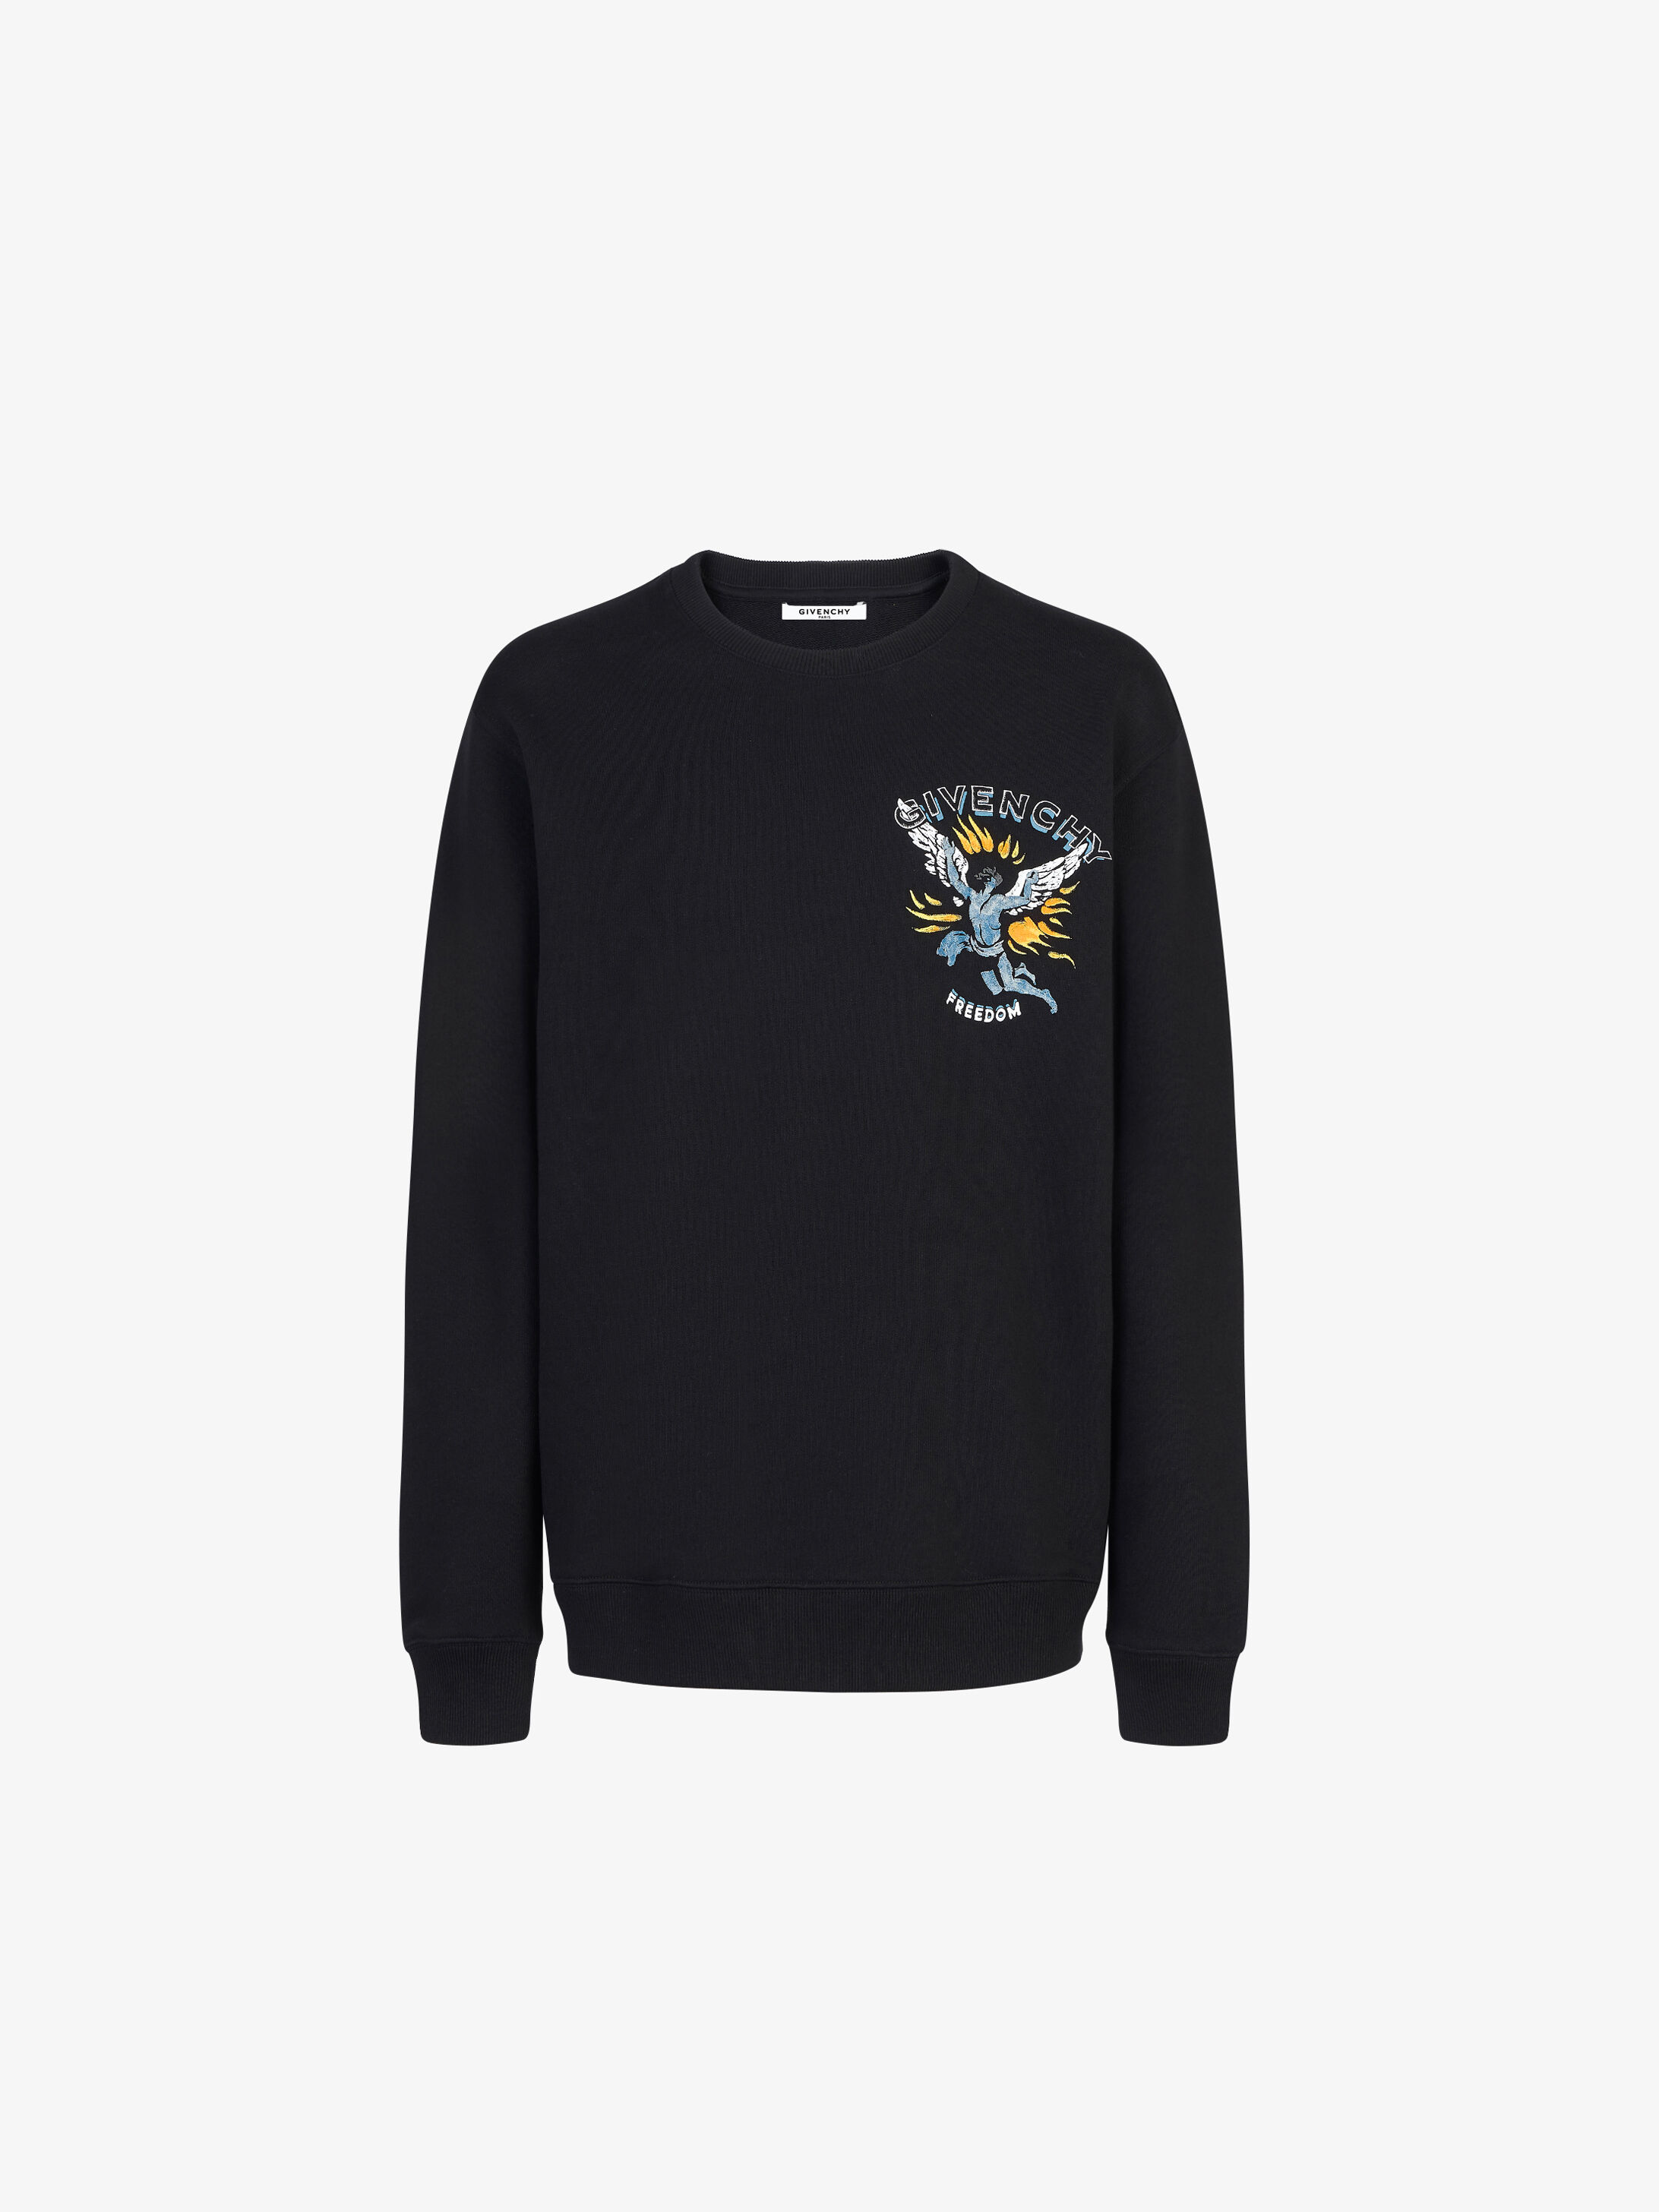 ca42a0d28 Men's Sweatshirts collection by Givenchy. | GIVENCHY Paris